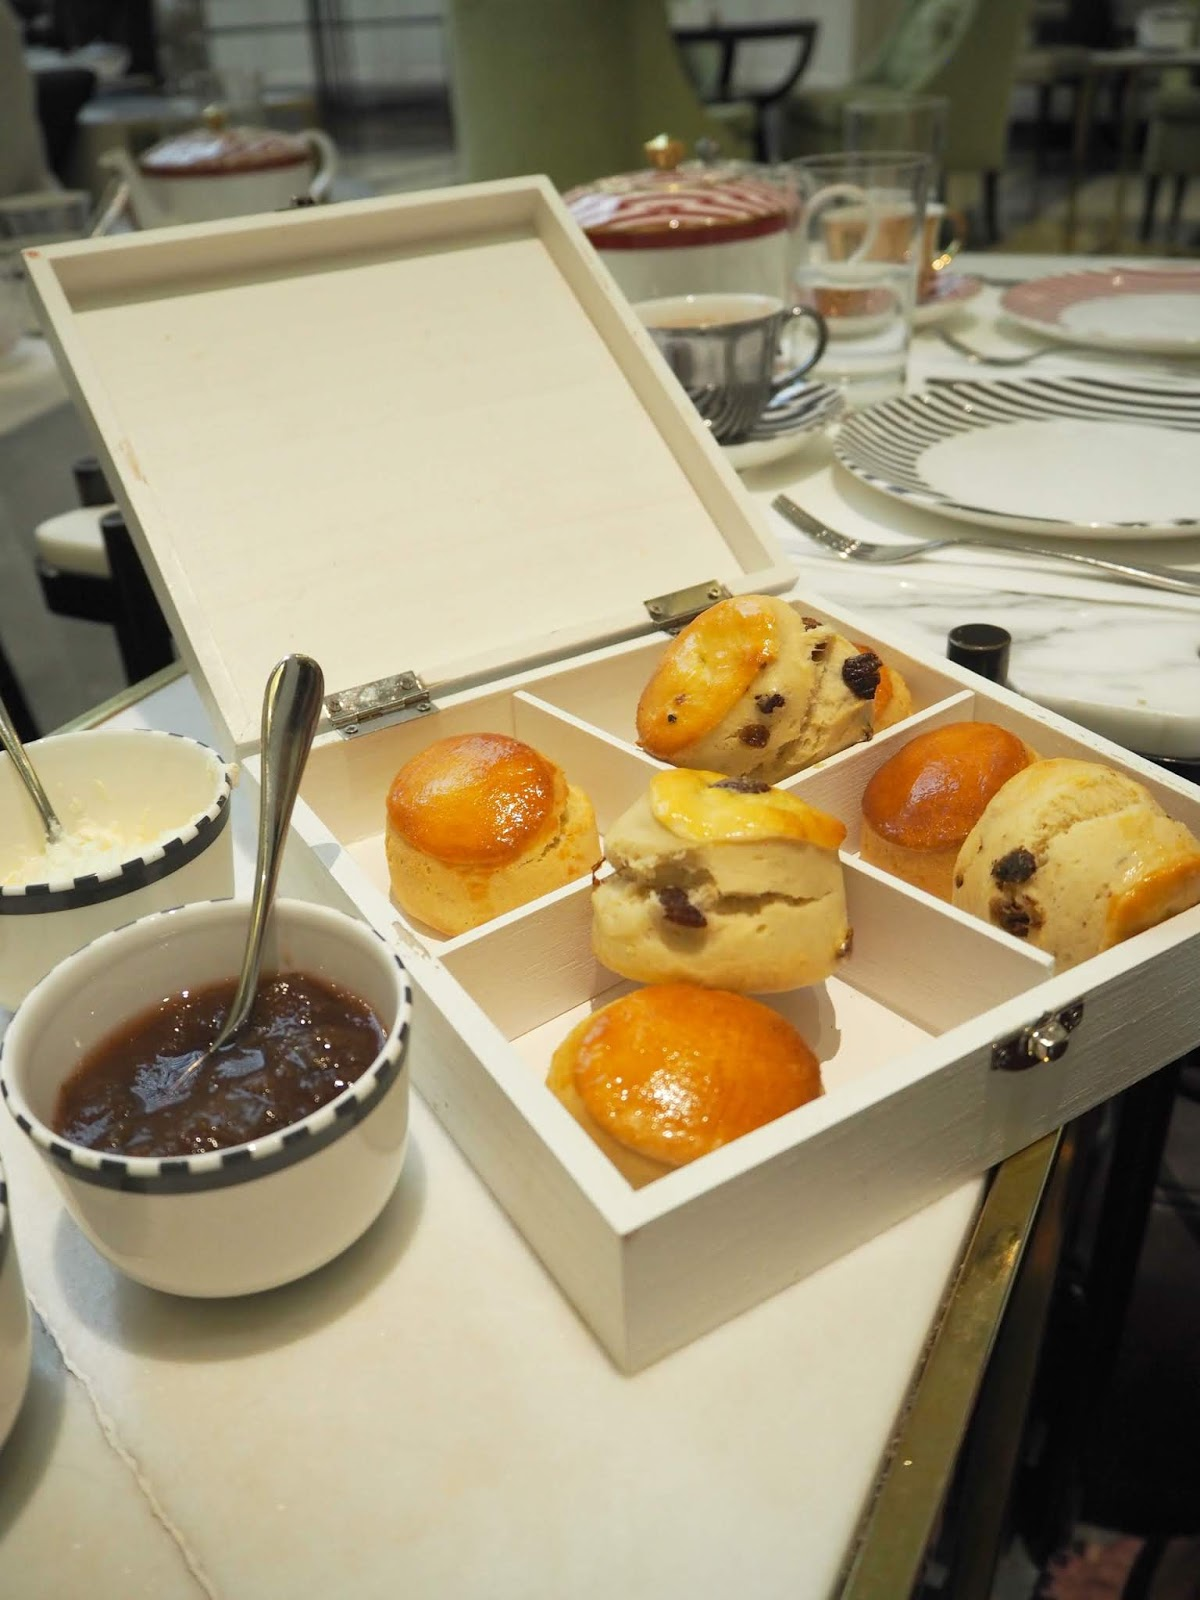 Scones served at The Corinthia London